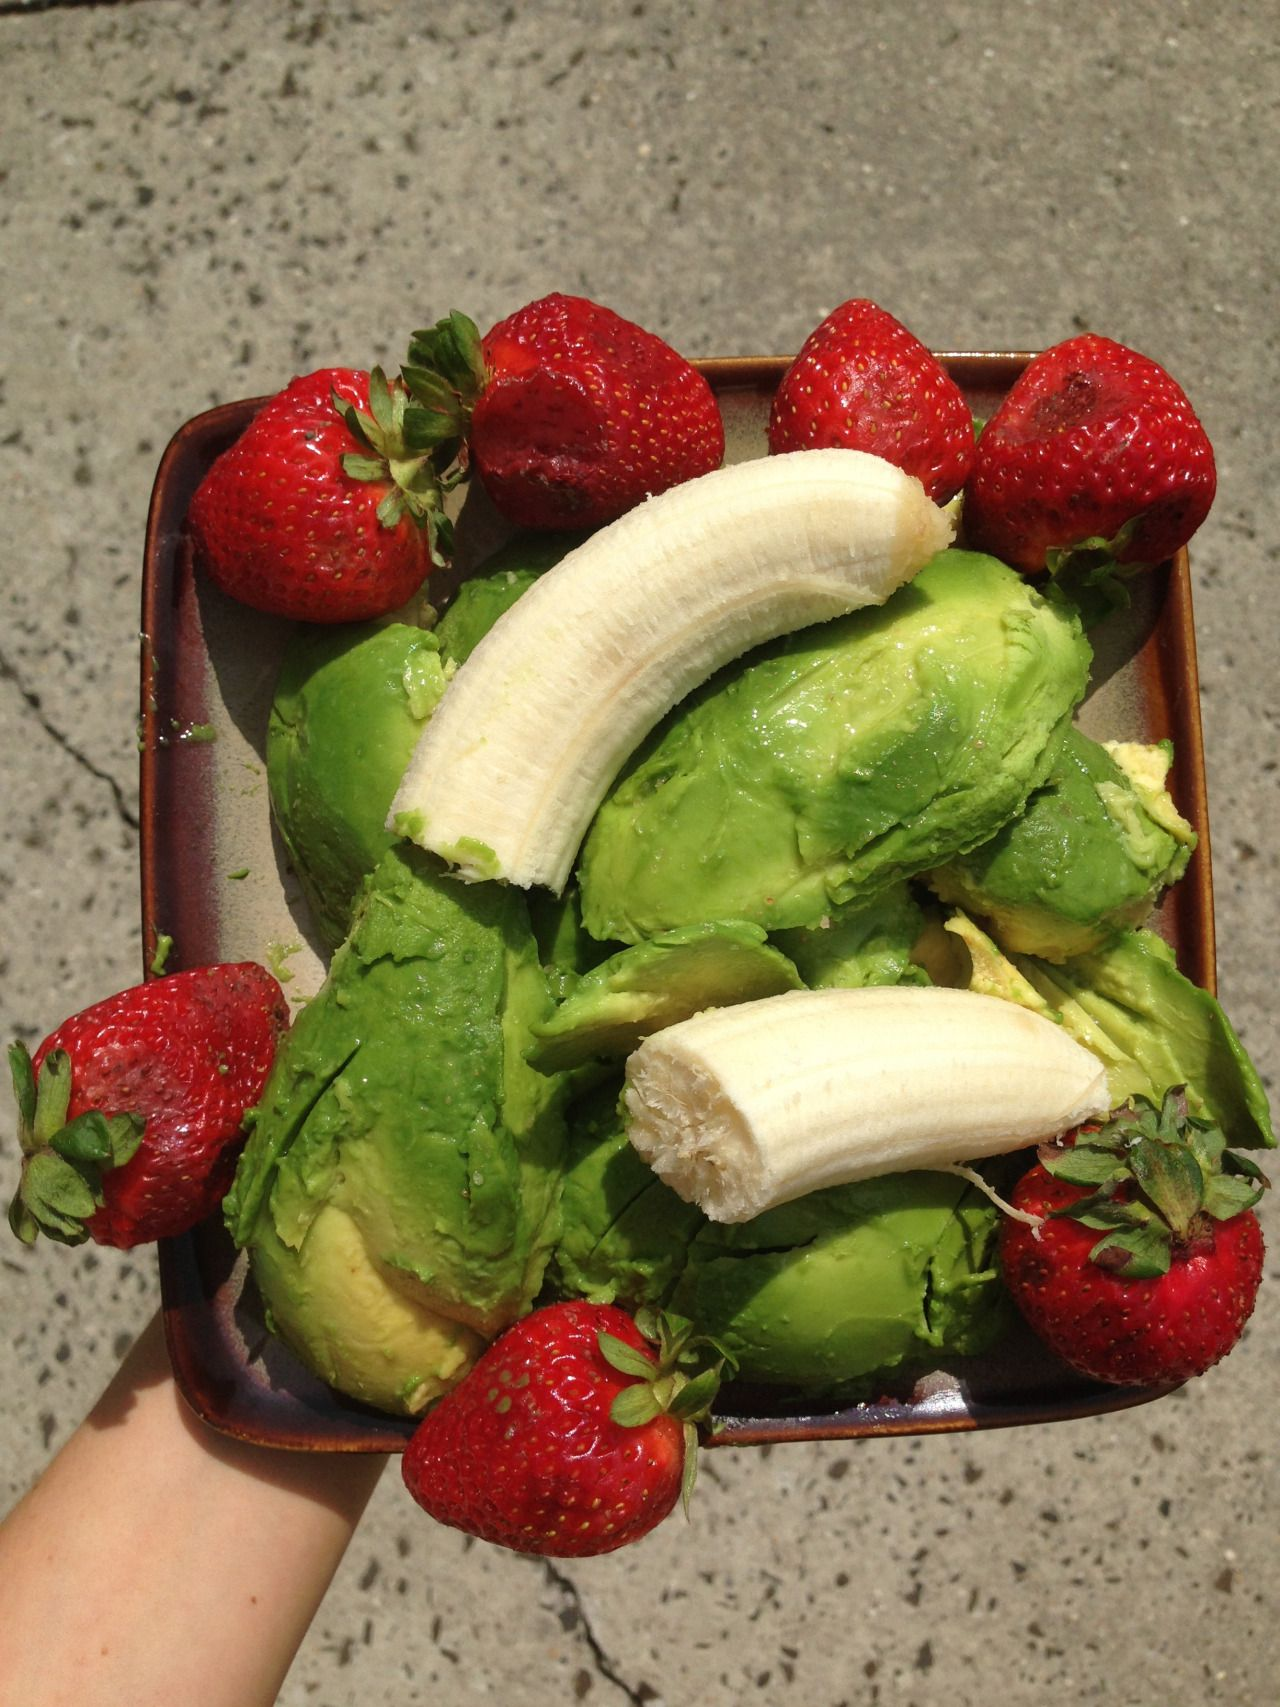 earth–eater:  my boyfriend wanted me to show off his epic snack! strawberry, avocado w lime juice, banana